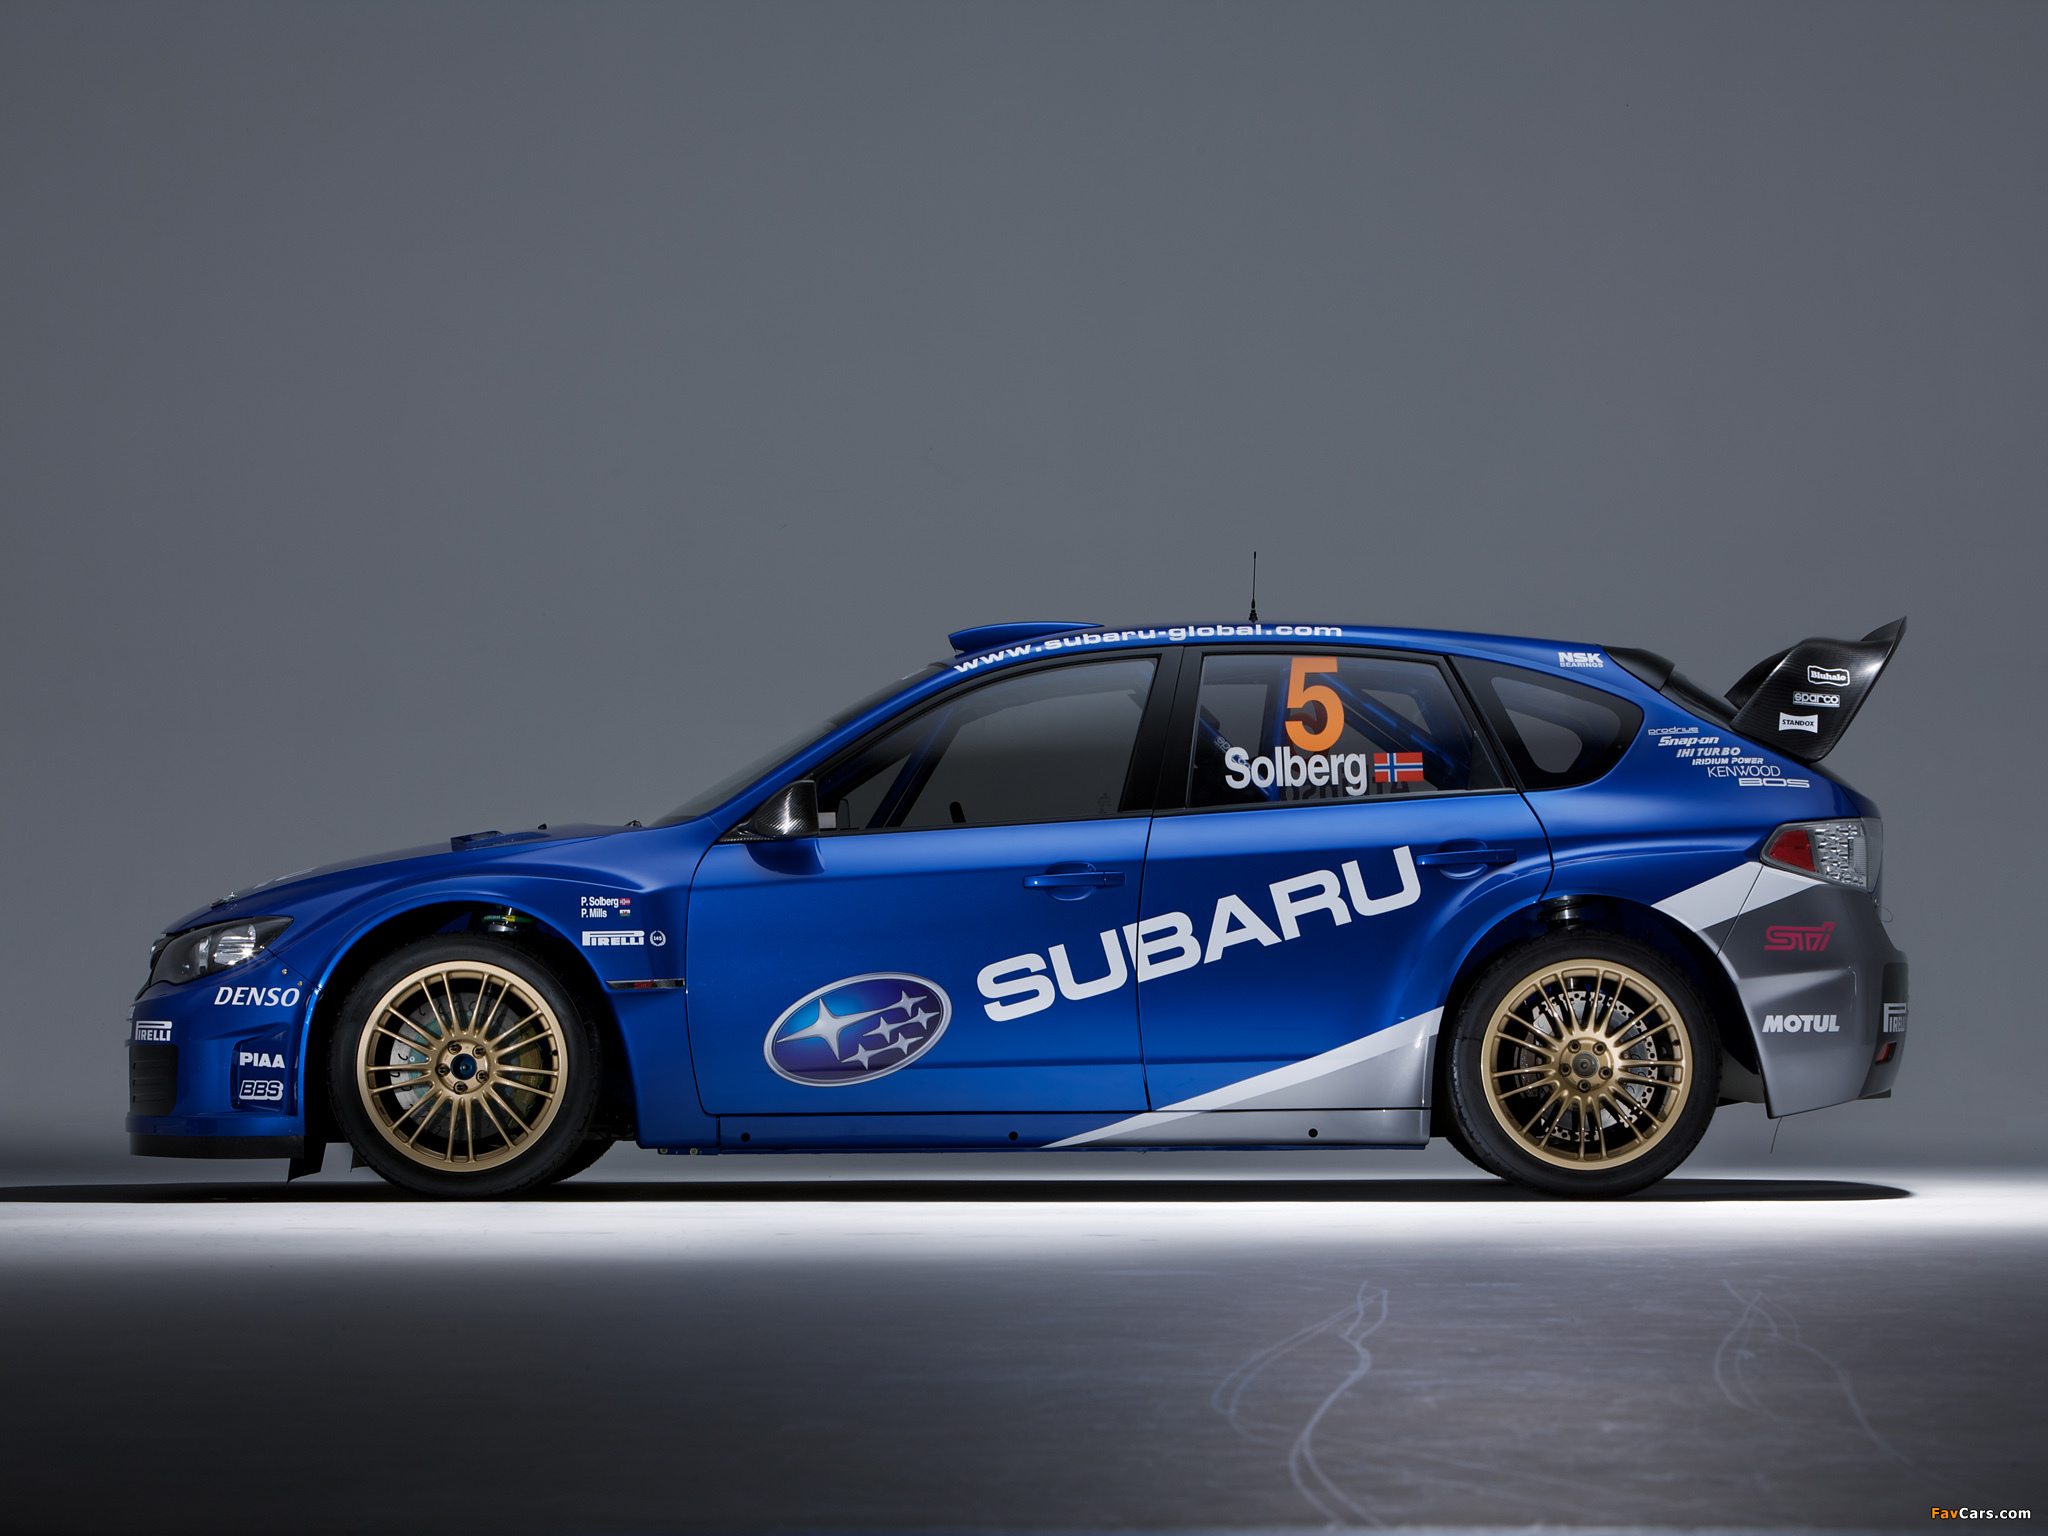 Subaru Impreza Wrx Sti Rally Car Wallpaper Wallpapers Of Subaru Impreza Wrc 2008 2048x1536